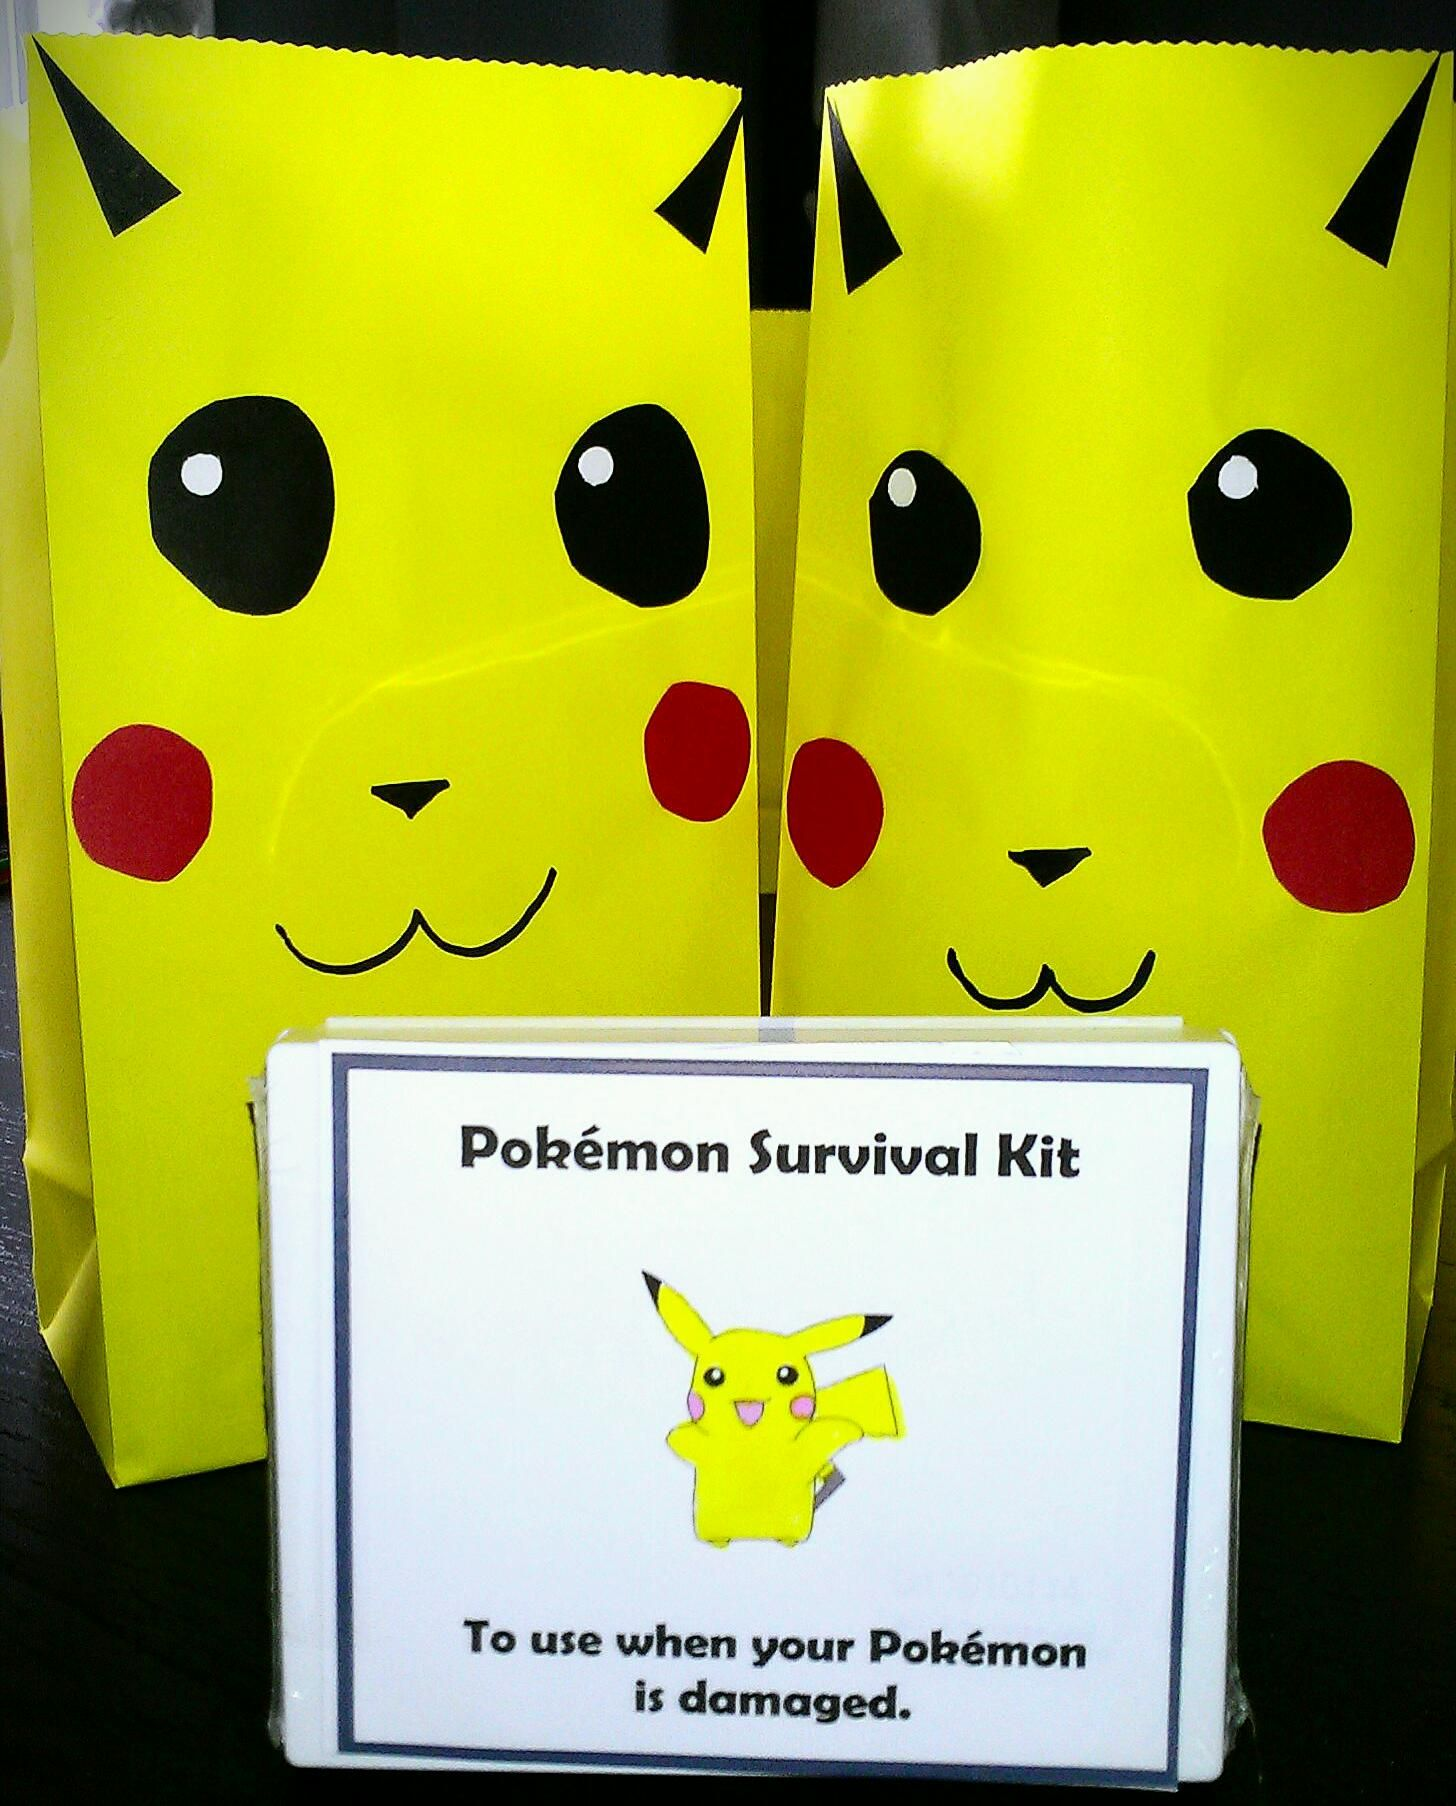 Pikachu gift bags and Pokemon survival kits first aid kit for